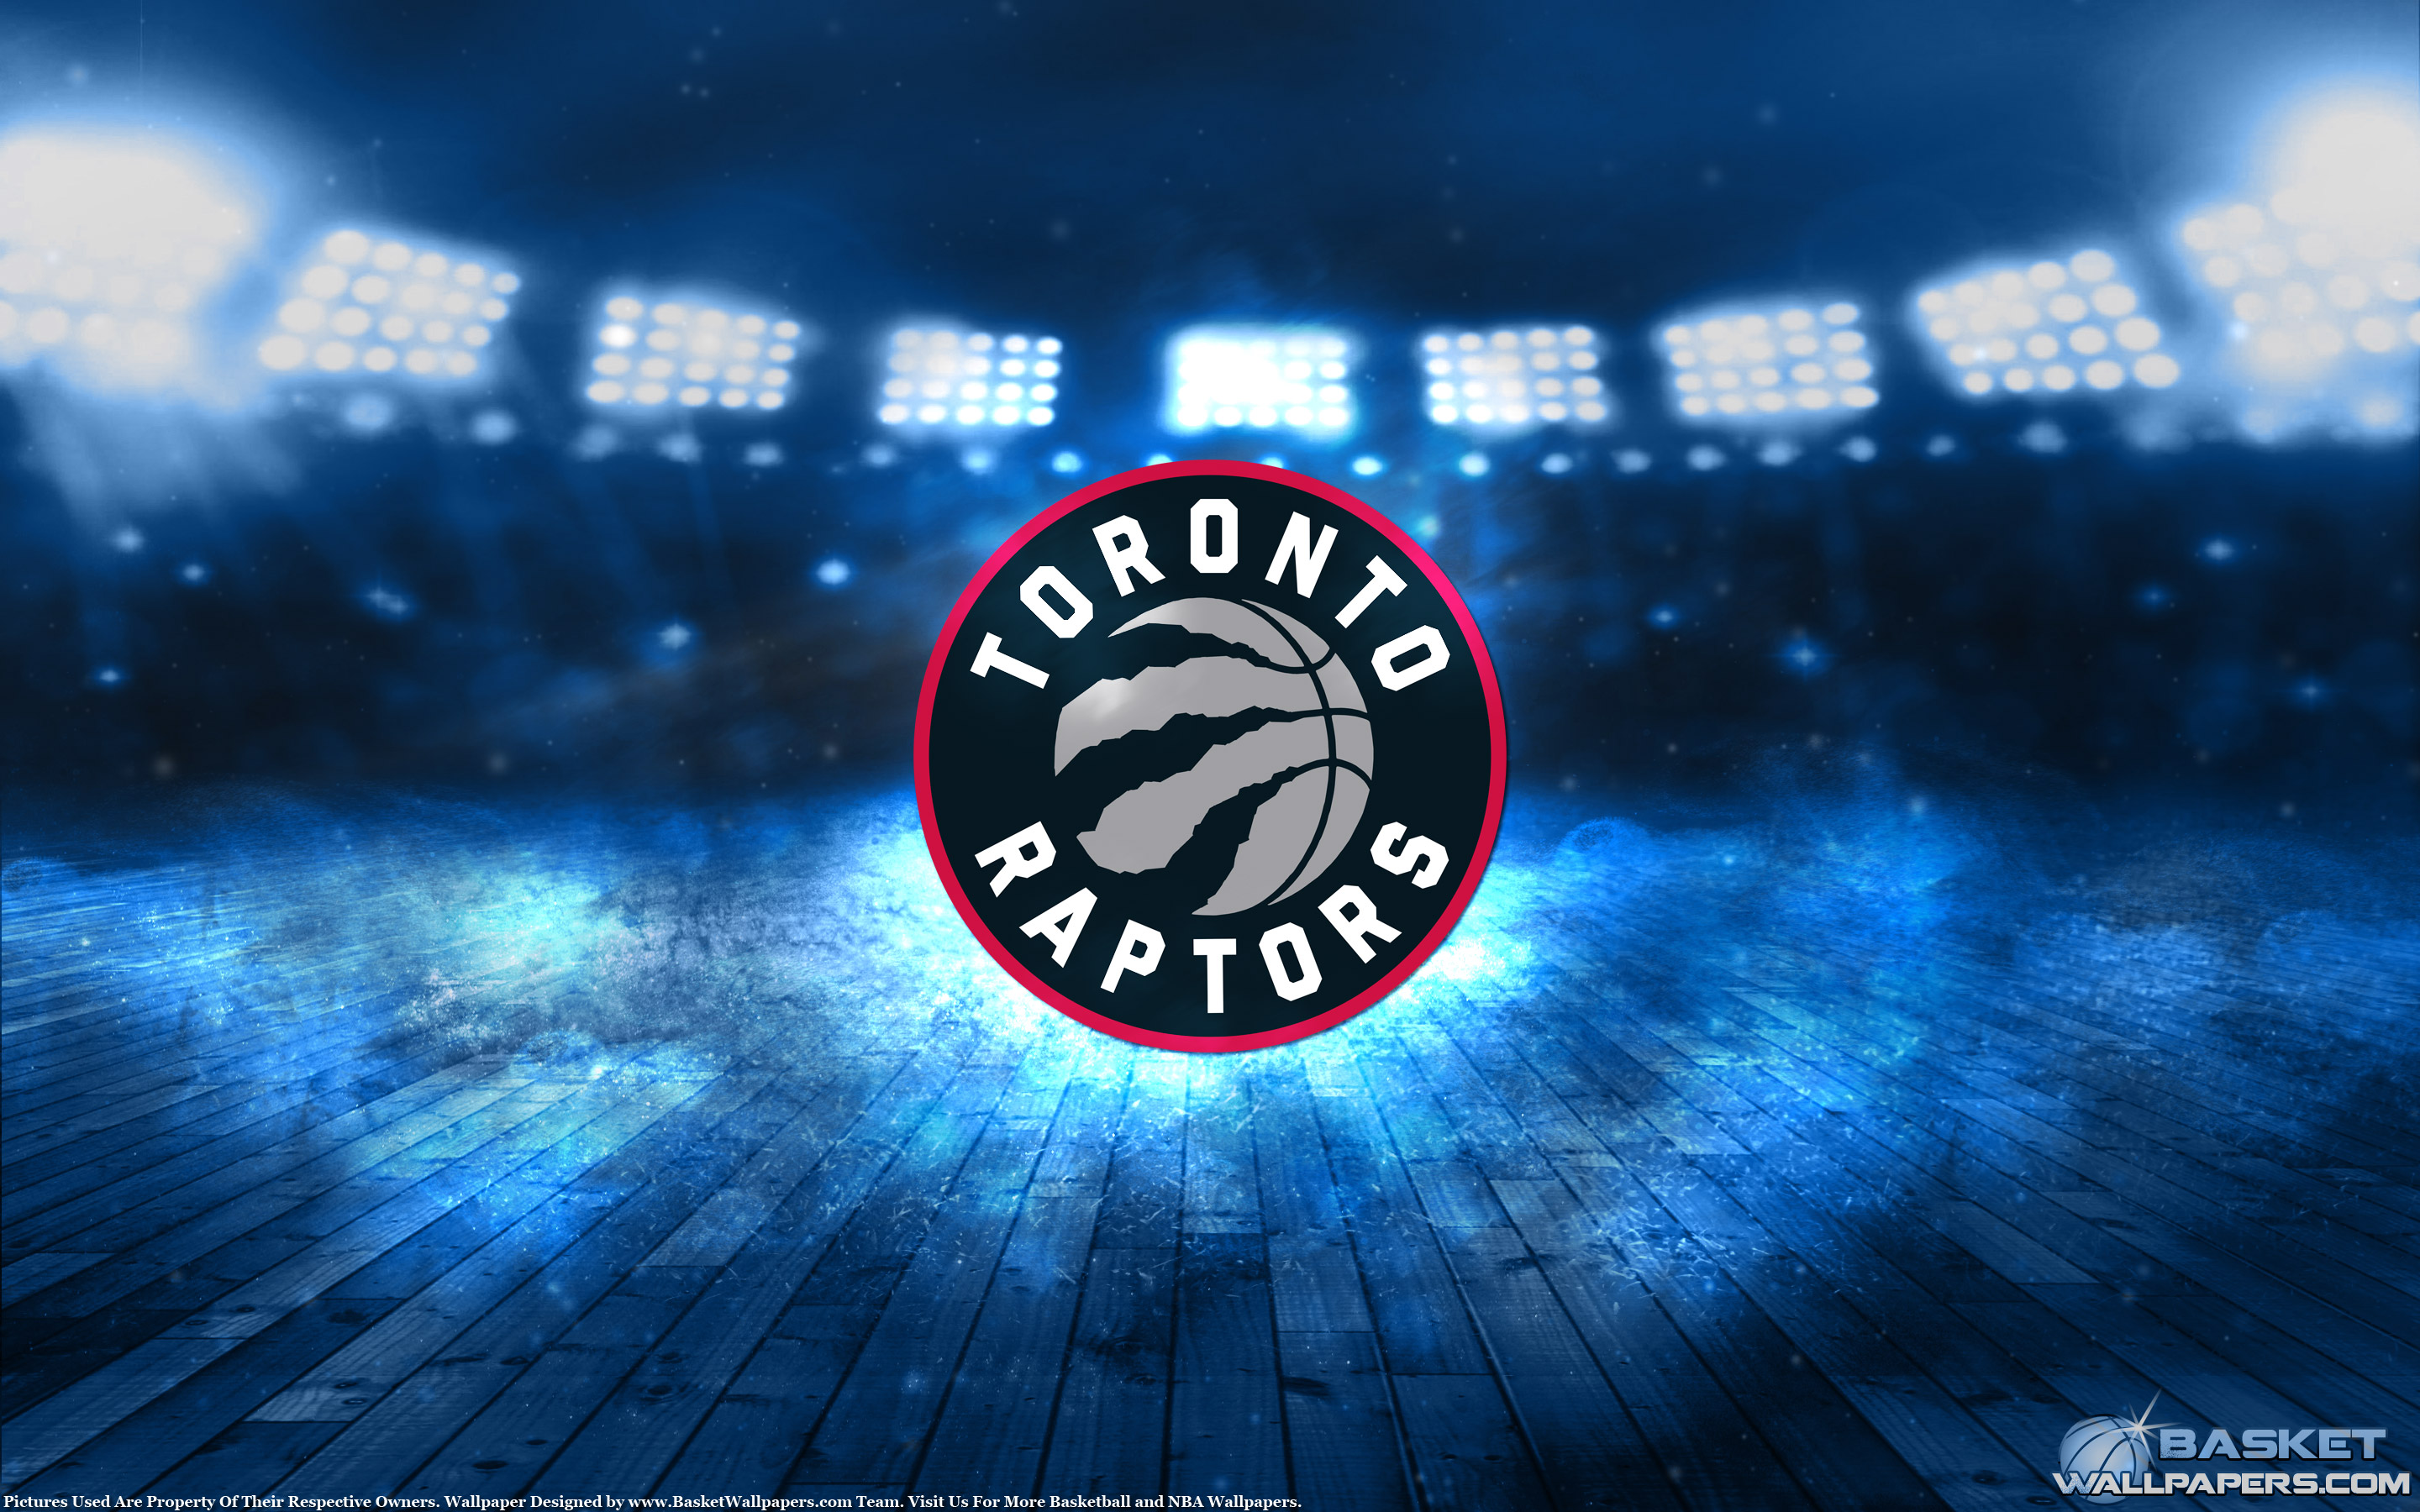 Toronto Raptors 2015 Logo 2880x1800 Wallpaper